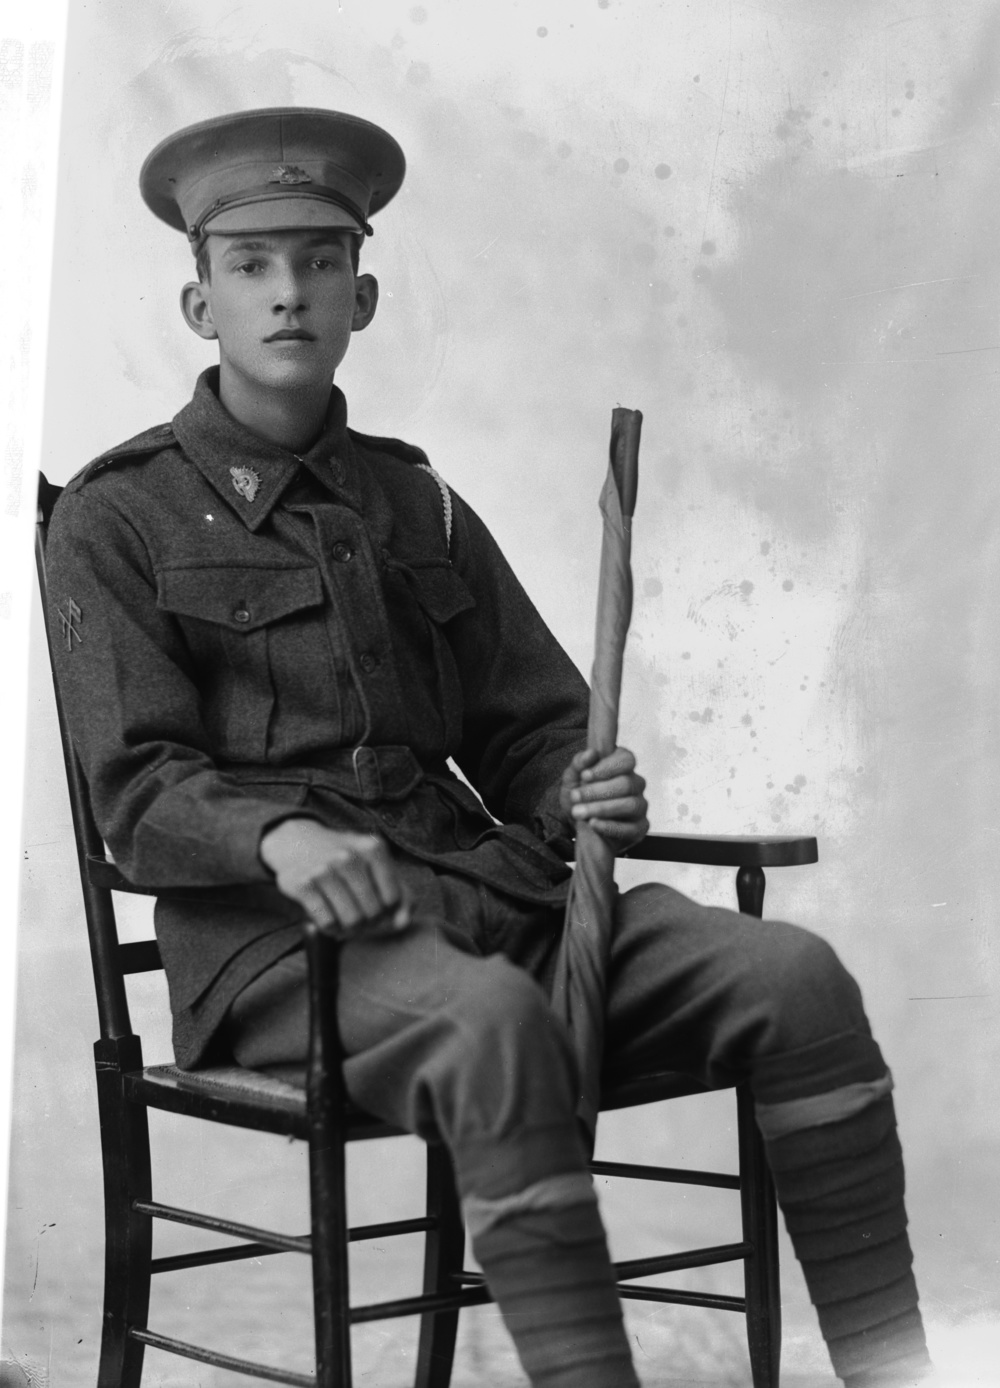 Photographed at the Dease Studio, 117 Barrack Street Perth WA Image courtesy of the State Library of Western Australia: 108293PD